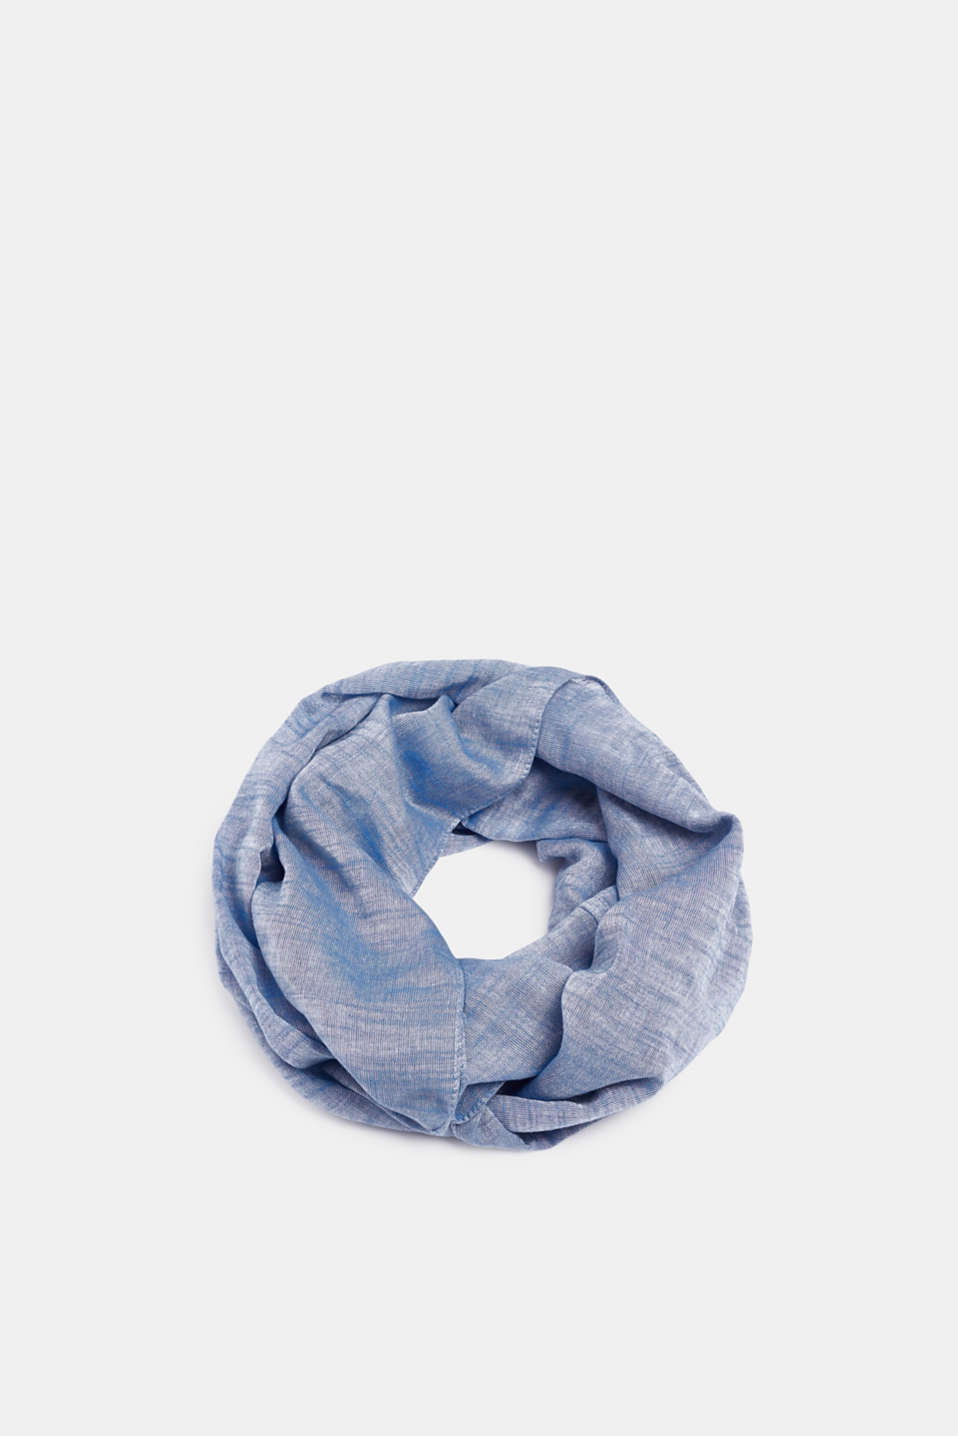 Esprit - Snood in a melange finish, 100% cotton